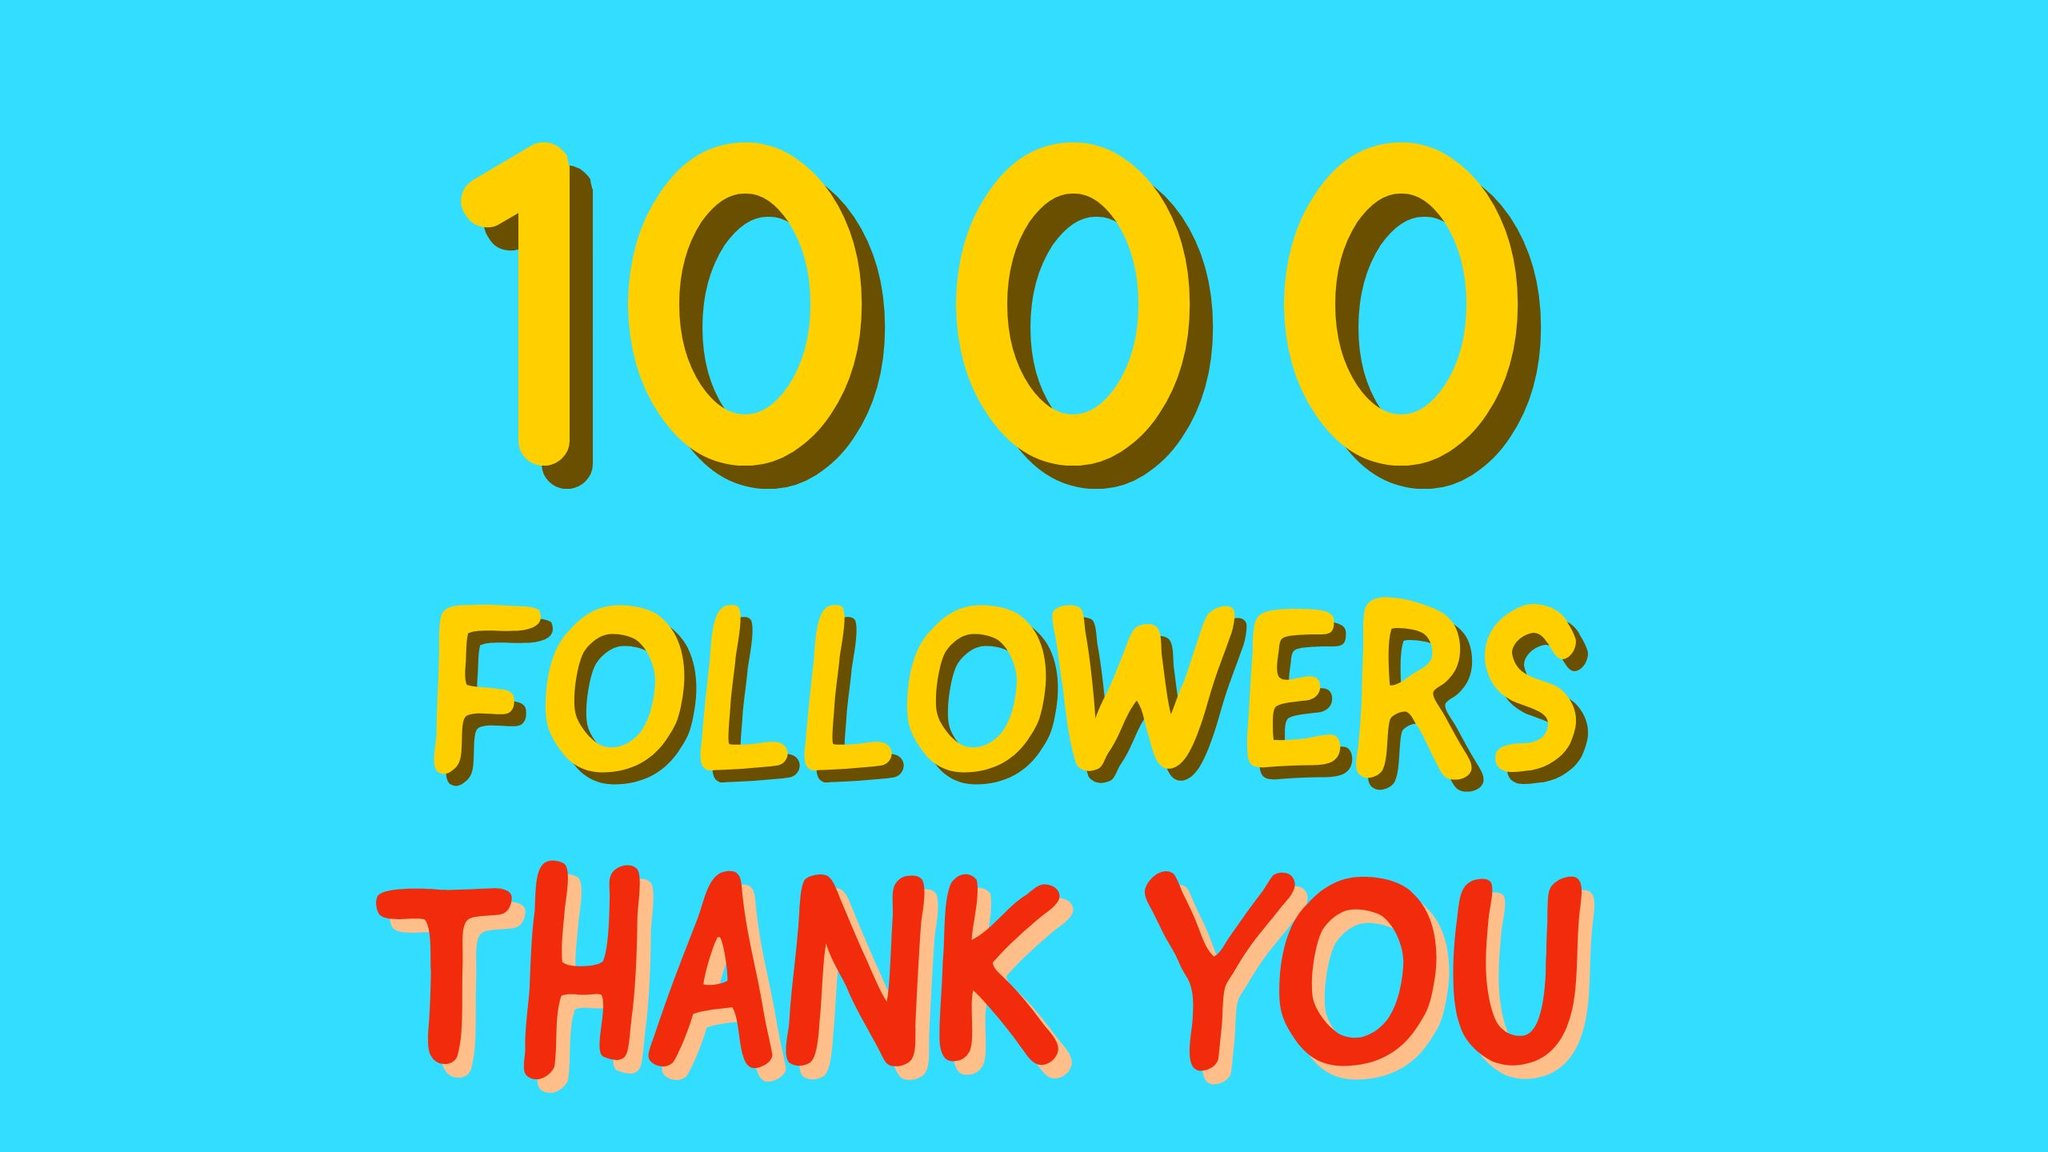 Thank You People ������������ #1000 https://t.co/47qLxxZV6K